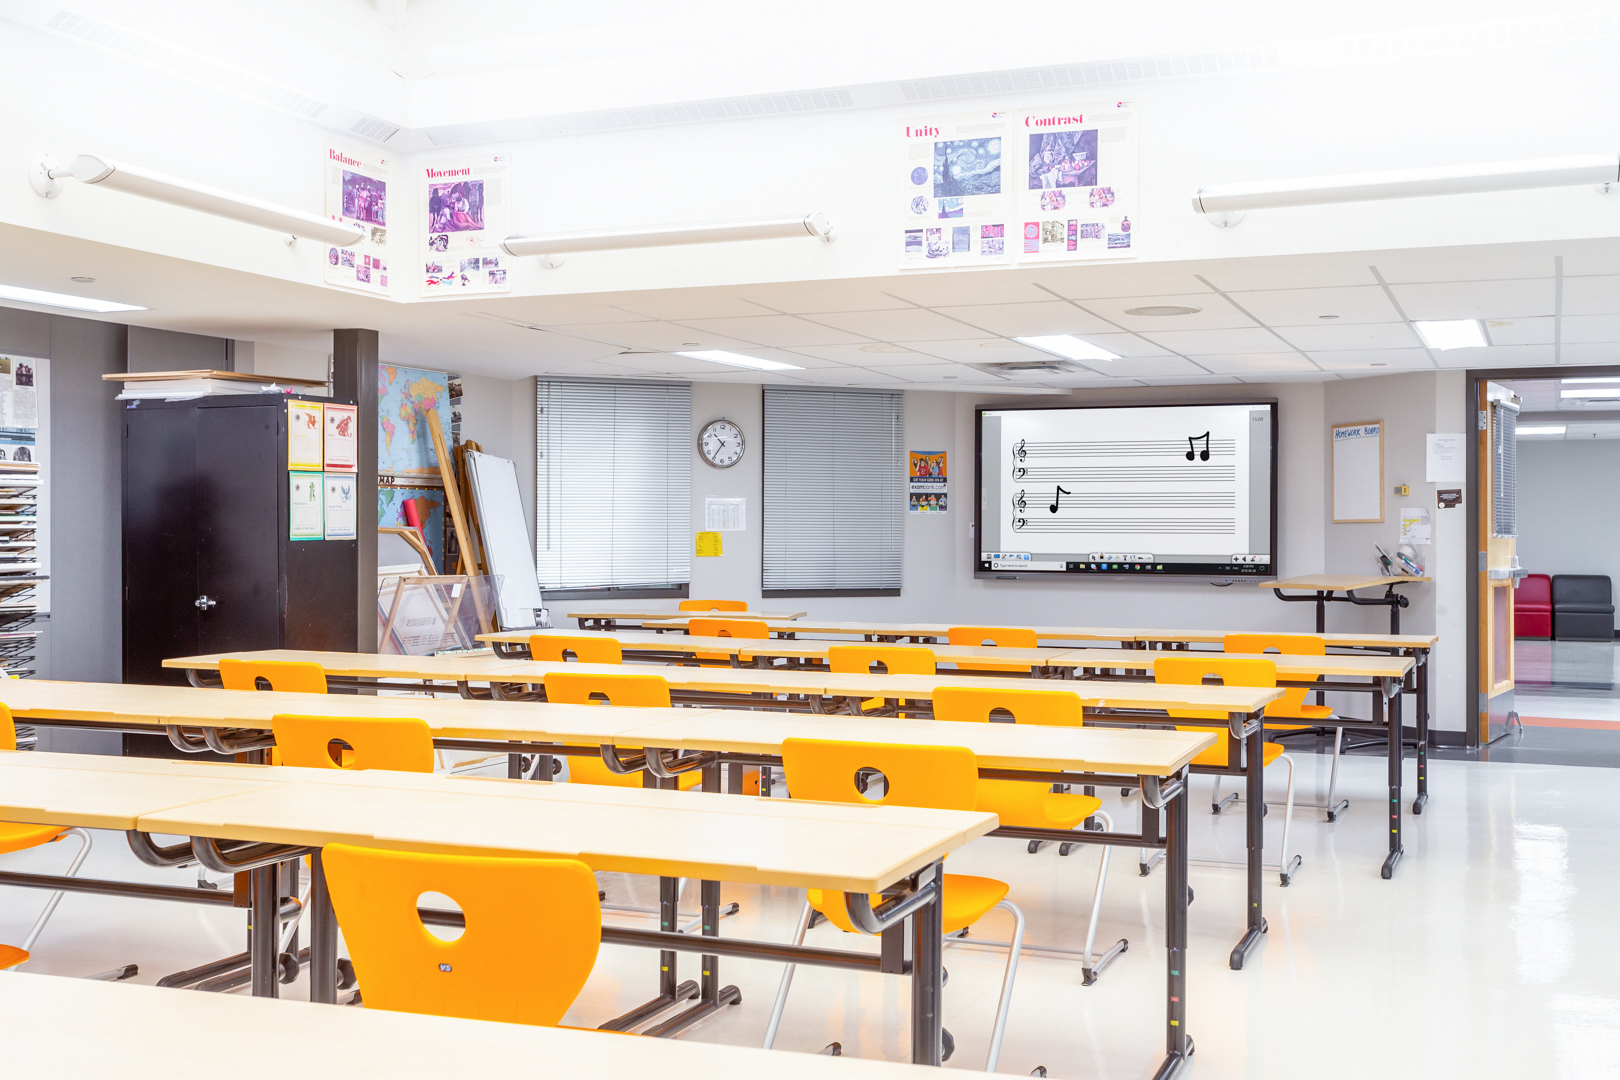 Our interactive displays were designed with your classroom in mind. - Our included software suite helps teachers to stay organized and students to stay engaged — all without ongoing maintenance costs and pricey software subscriptions.